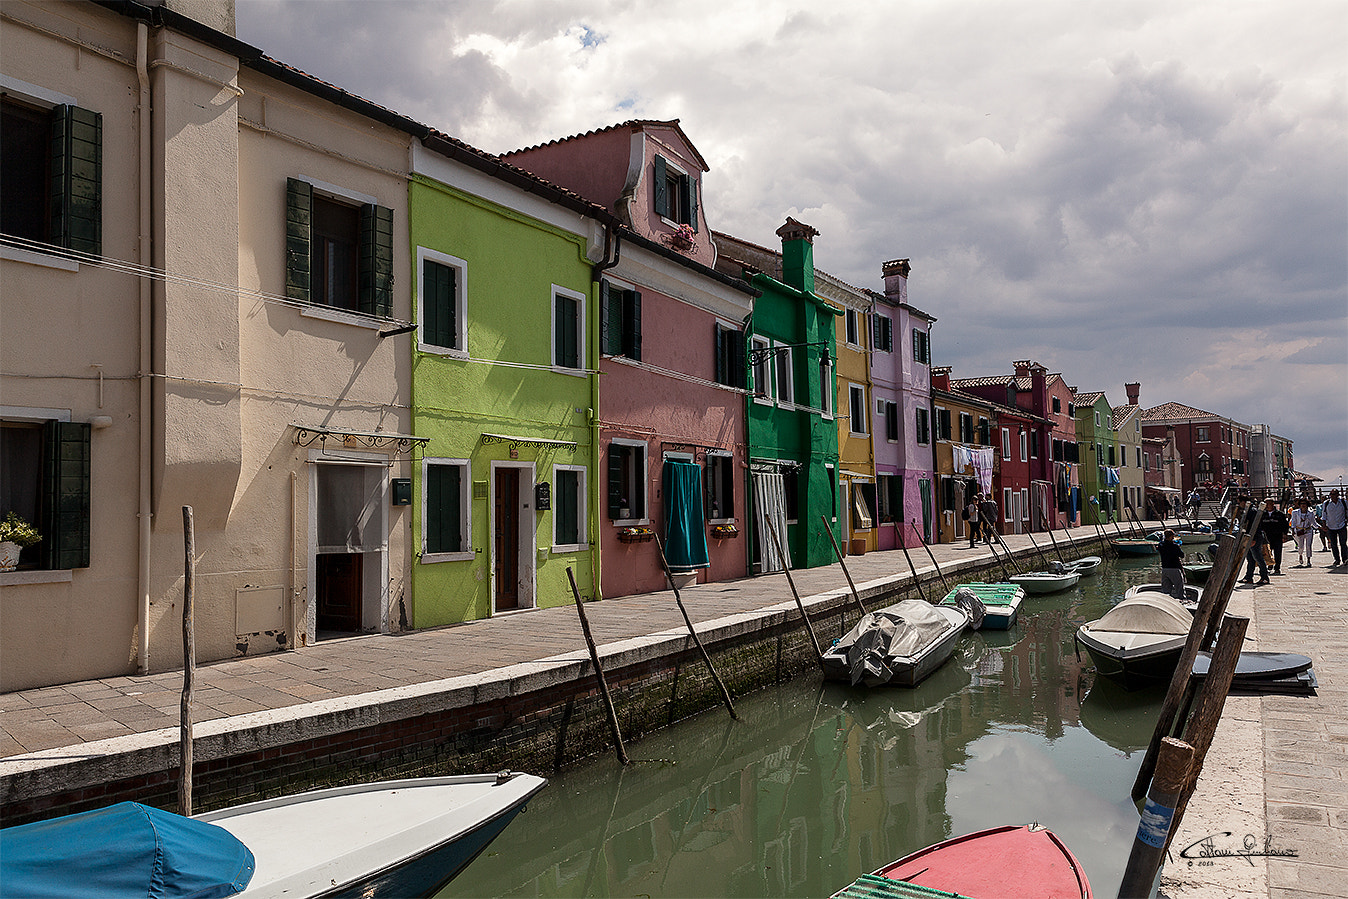 Photograph I colori di Burano by Giuliano Cattani on 500px